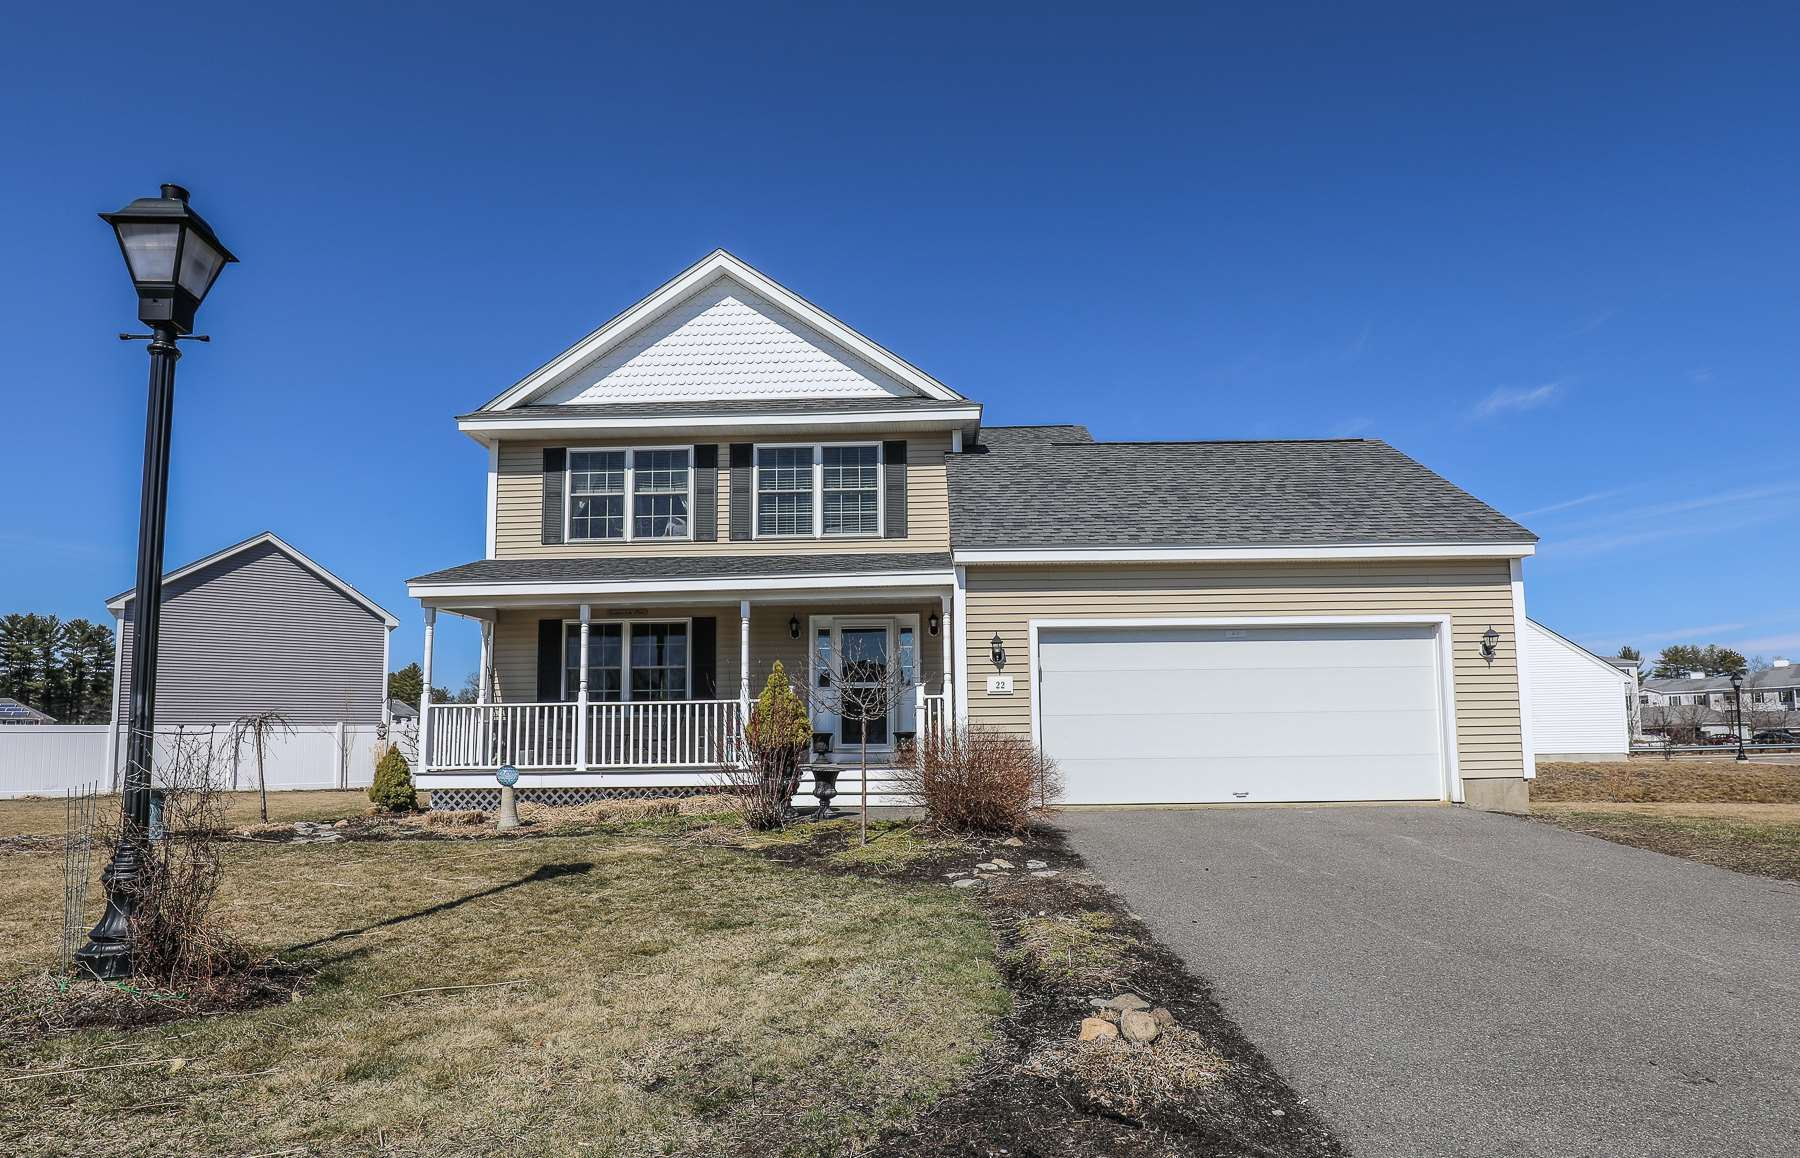 22 Amy Way, Concord, NH 03303 - #: 4799540